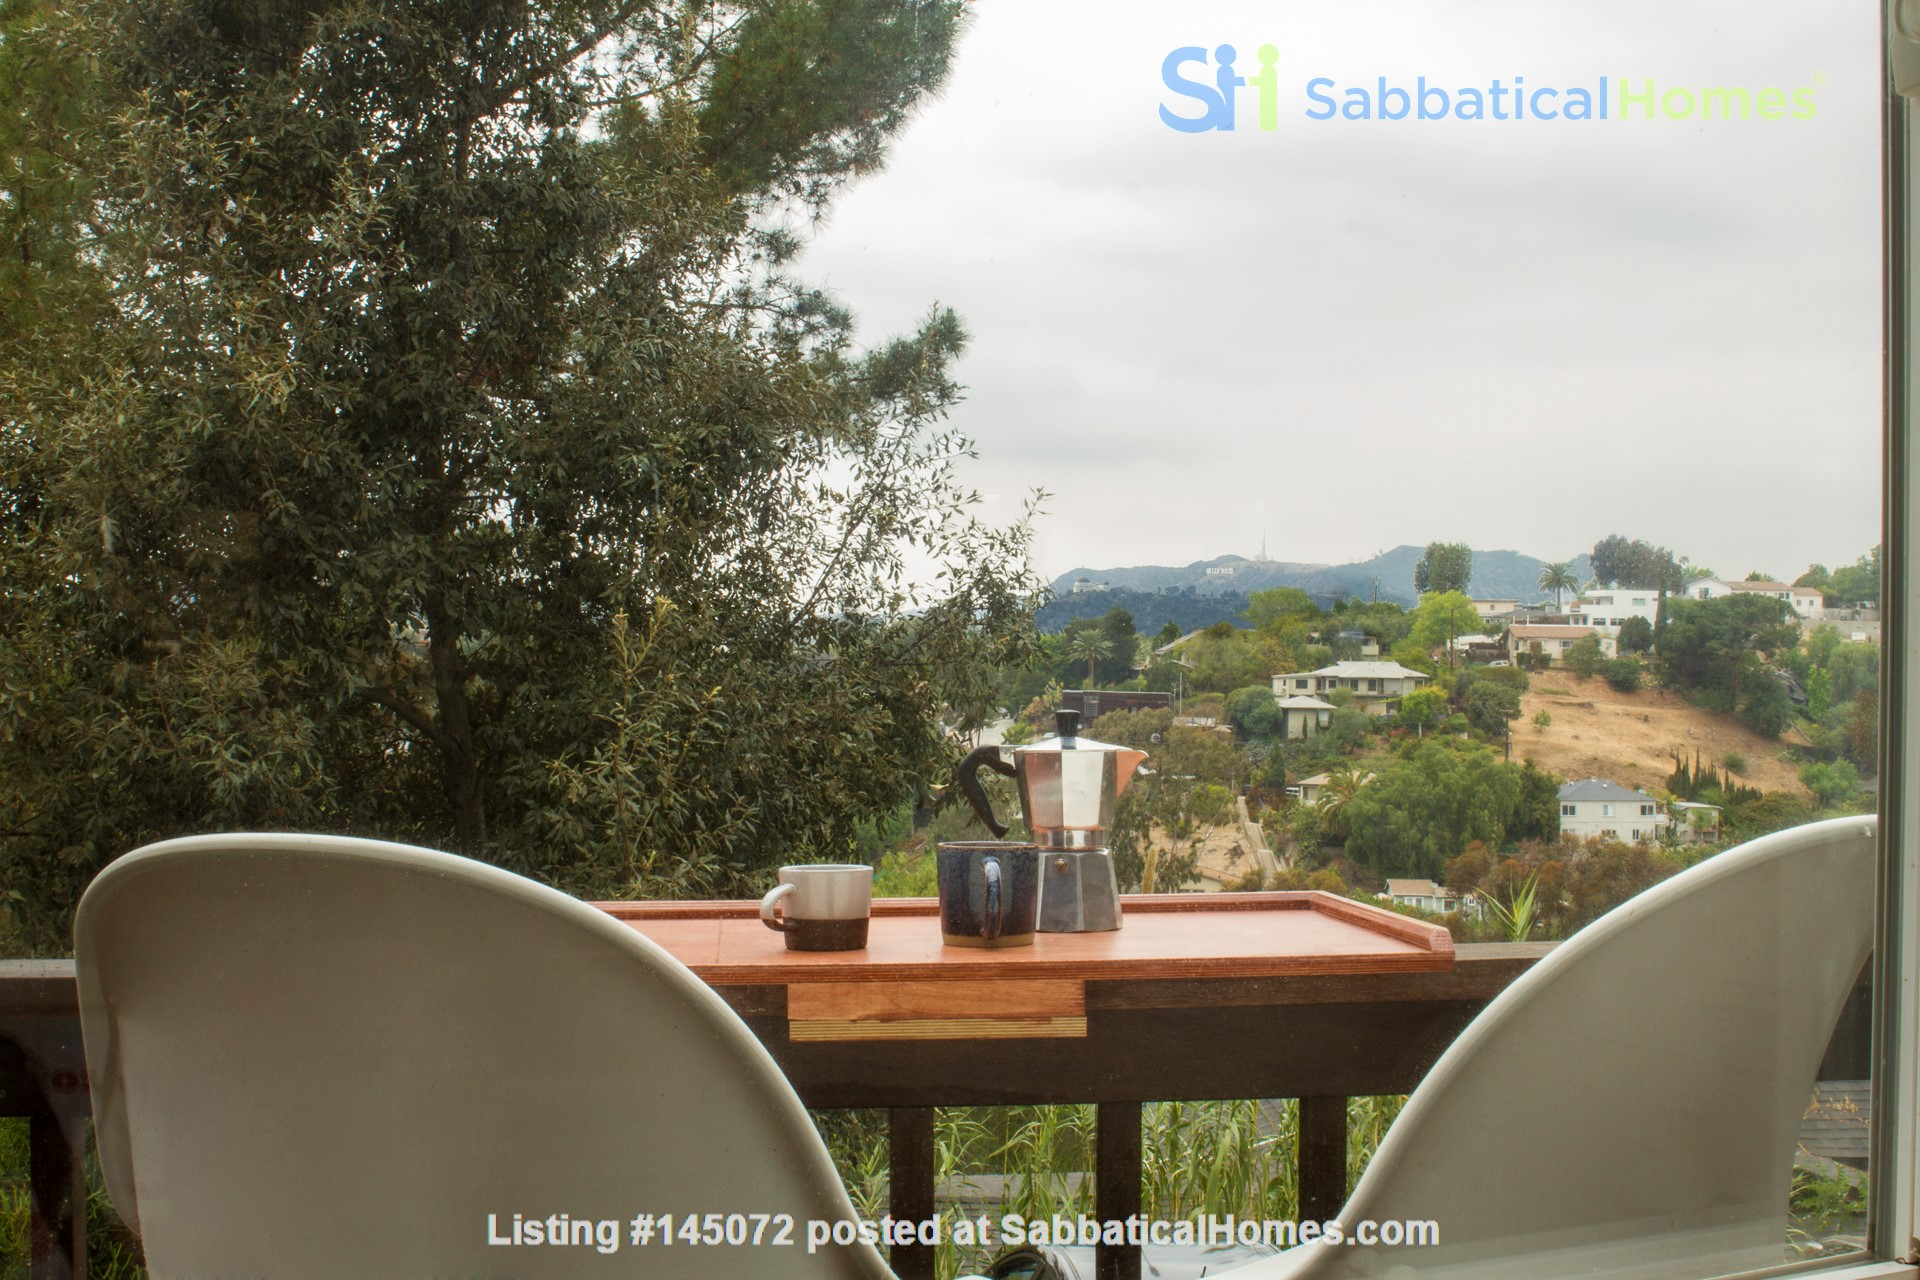 Secluded hide away in the hills Home Rental in Los Angeles, California, United States 1